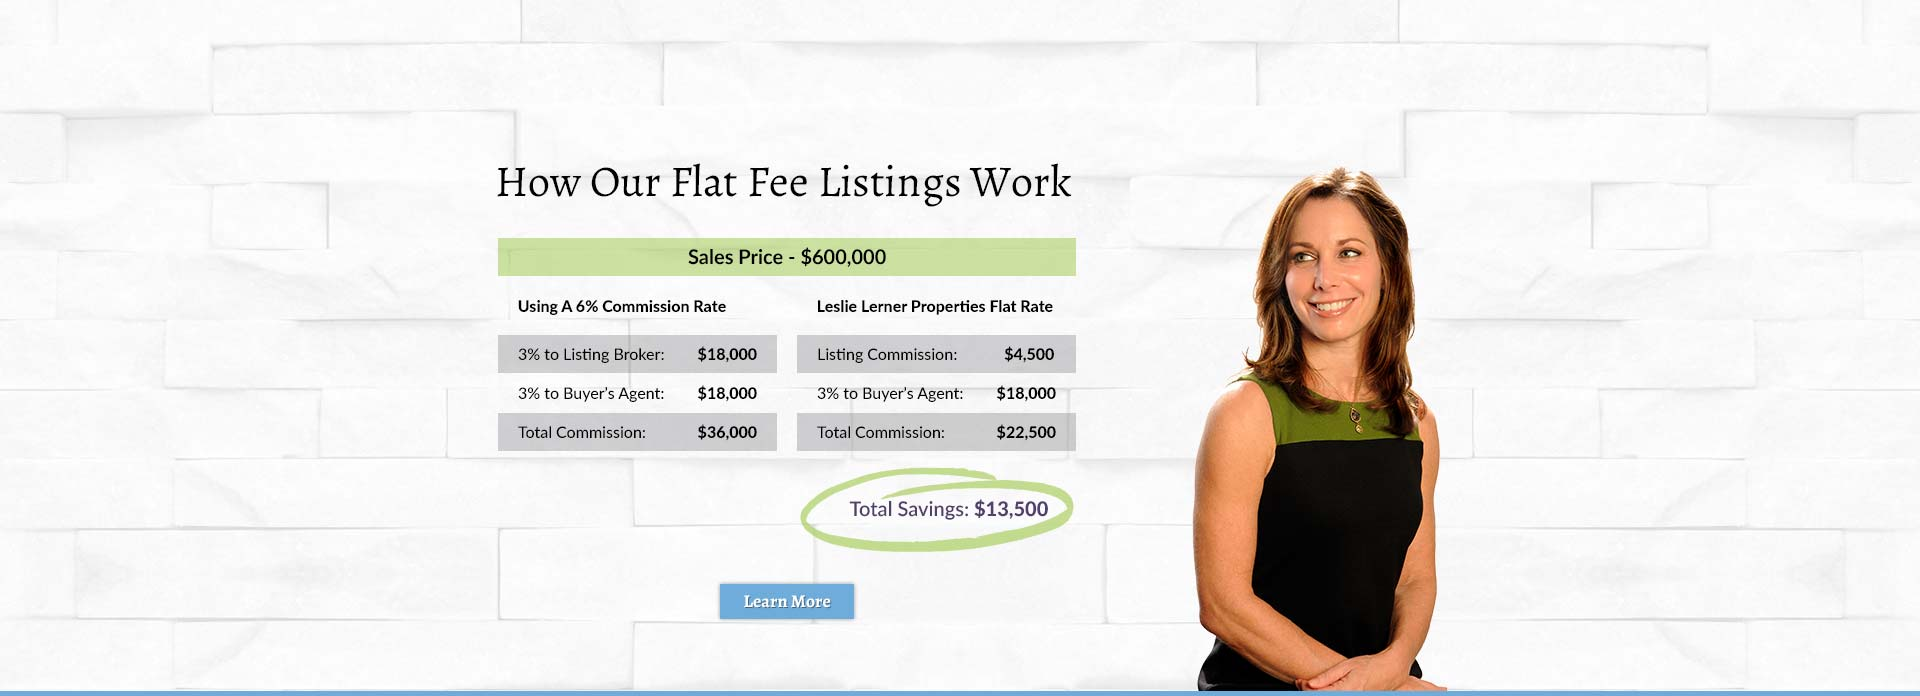 How Our Flat Fee Listings Work